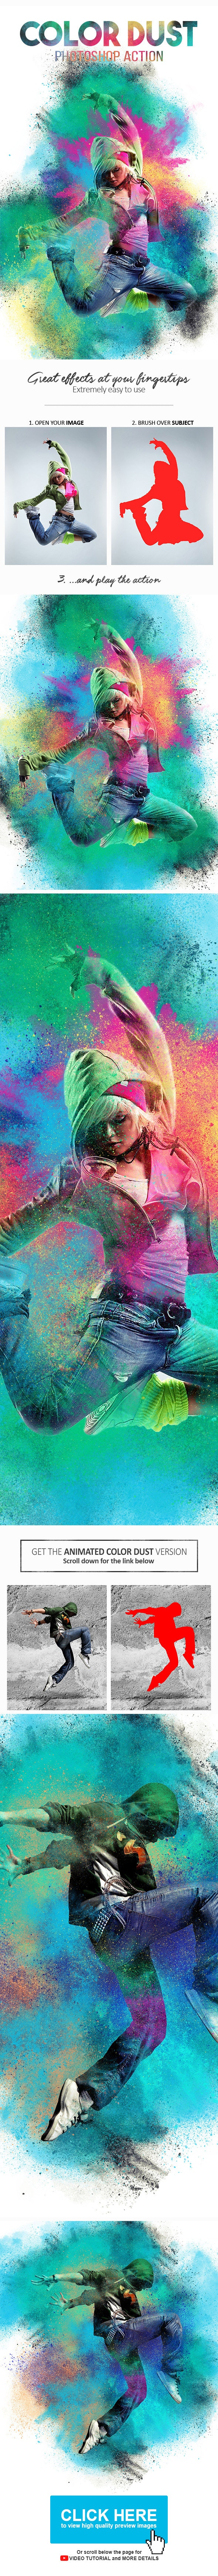 Color Dust Photoshop Action - Photo Effects Actions